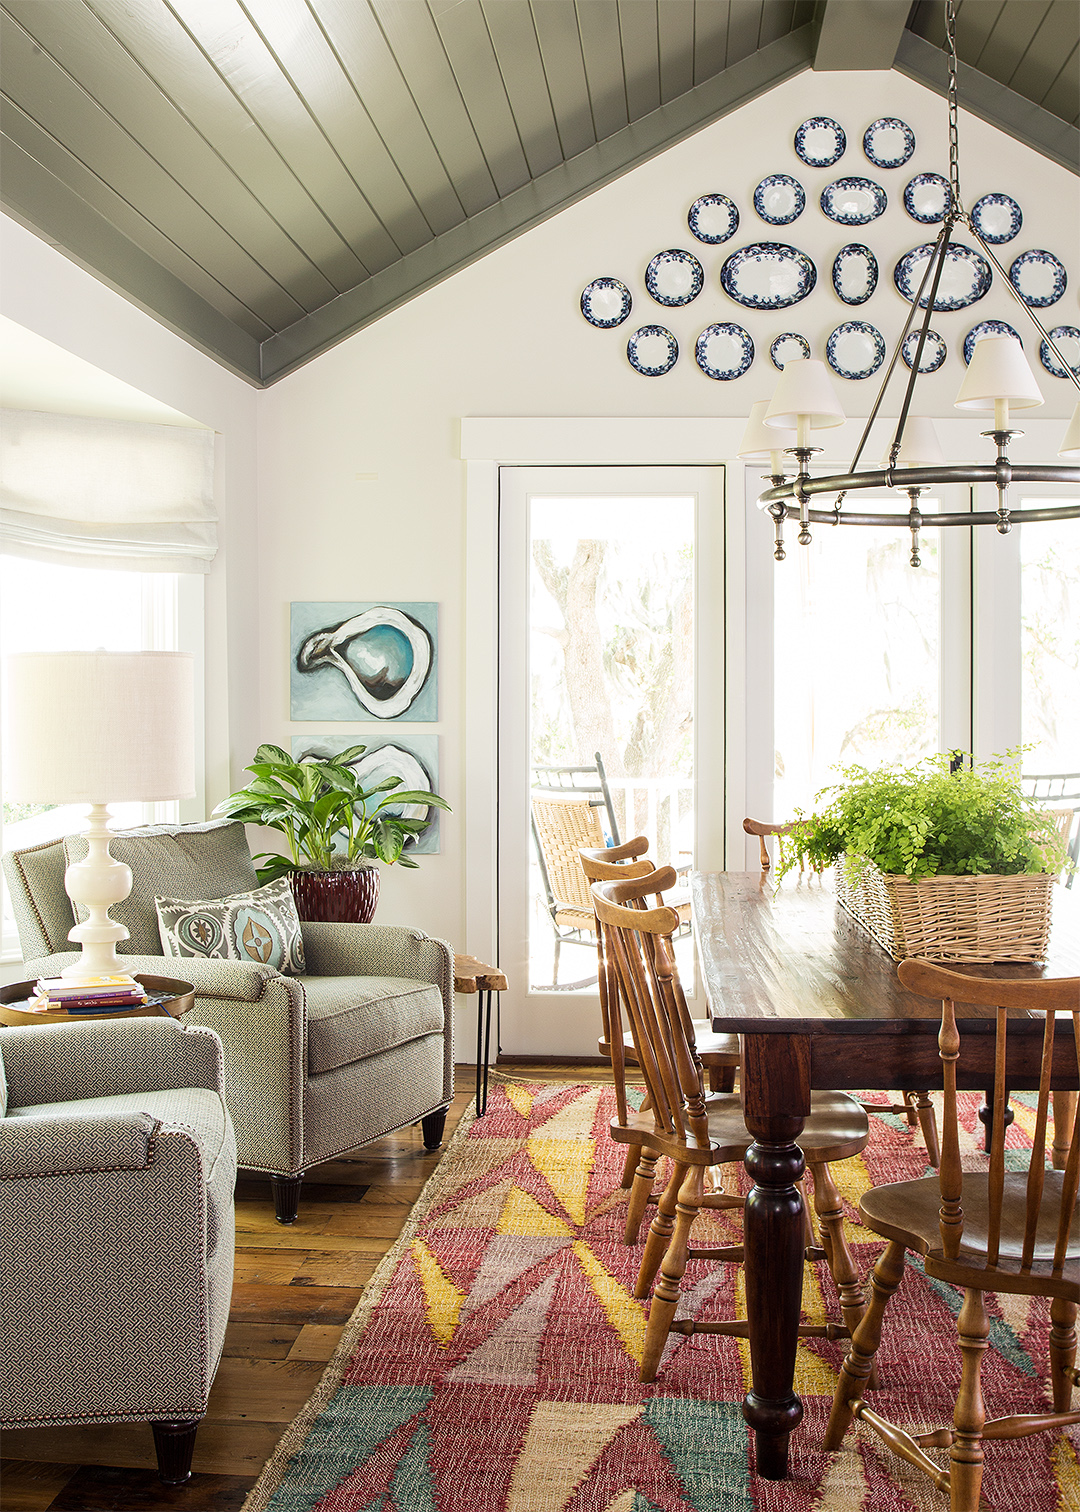 Green Paint Colors Our Editors Swear By | Better Homes & Gardens